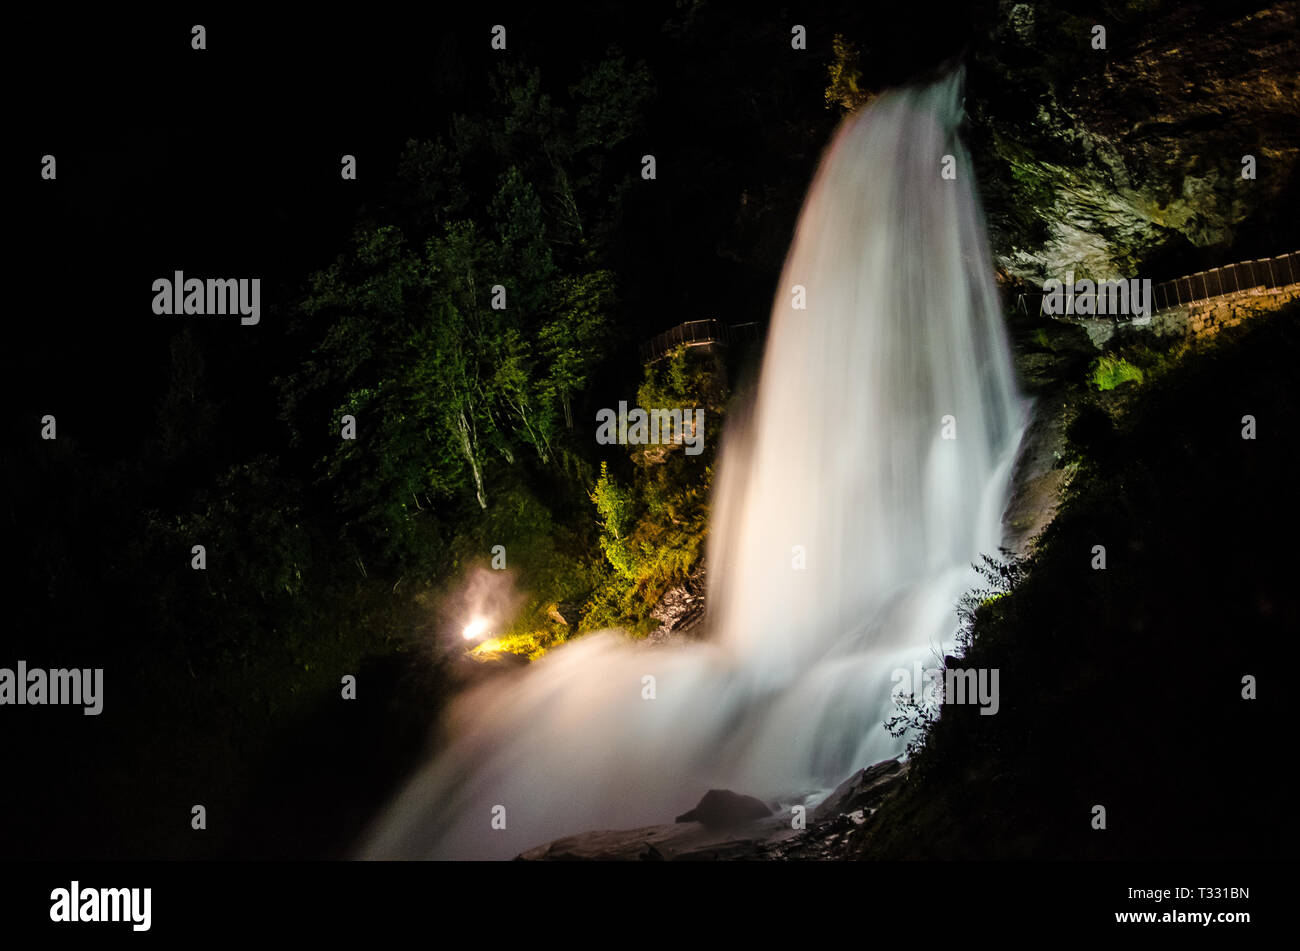 Beautiful waterfall Steinsdalsfossen in Norway shining lit up in the night. - Stock Image